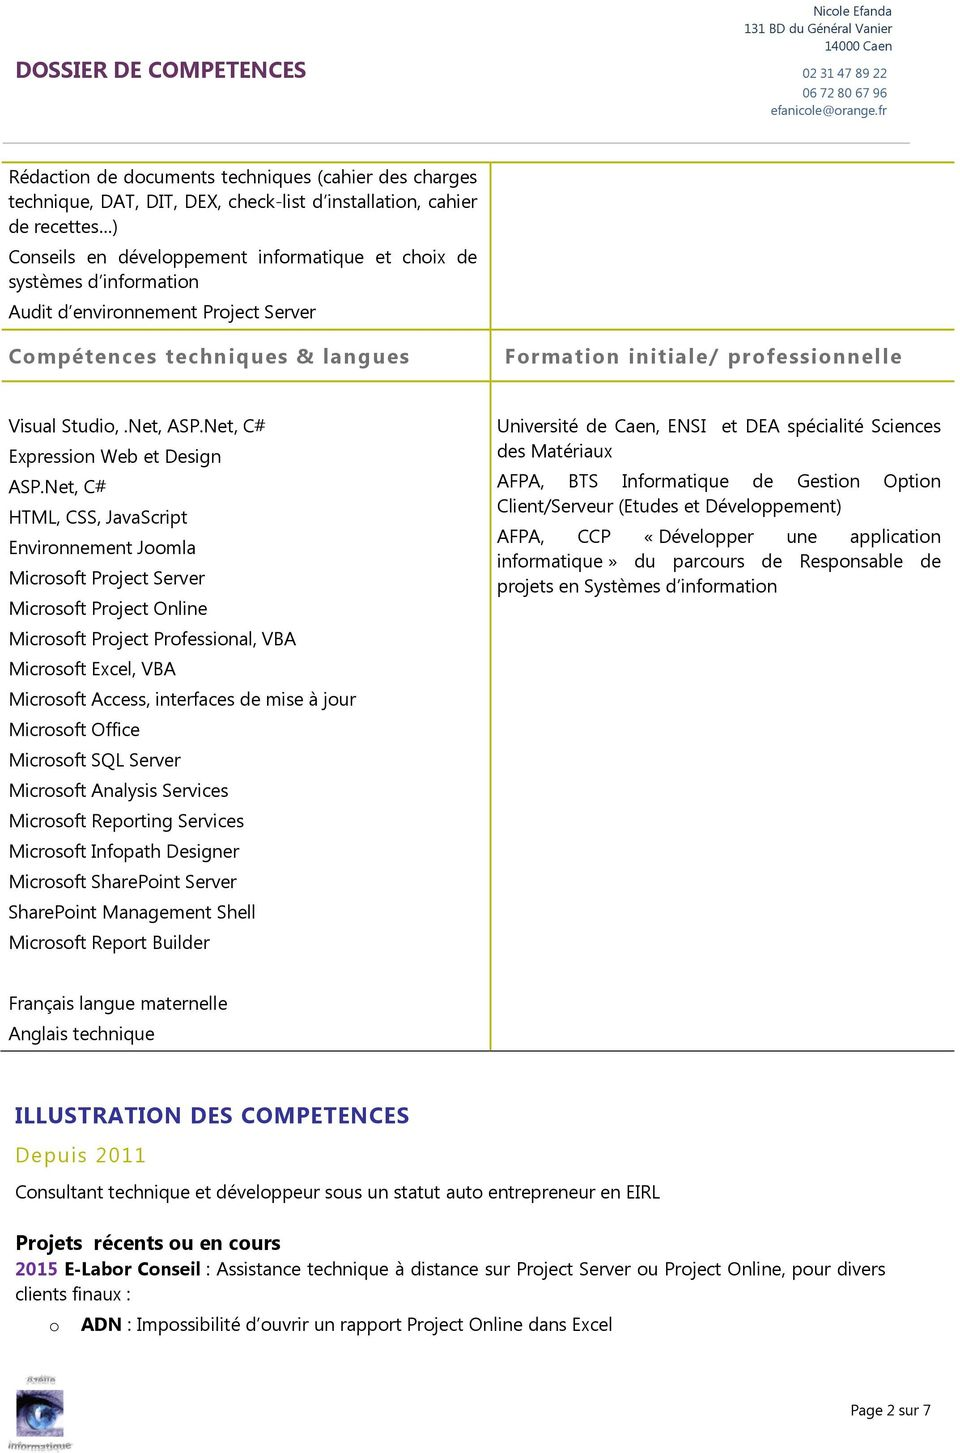 Audit d envirnnement Prject Server Cmpétences techniques & langues Frmatin initiale/ prfessinnelle Visual Studi,.Net, ASP.Net, C# Expressin Web et Design ASP.